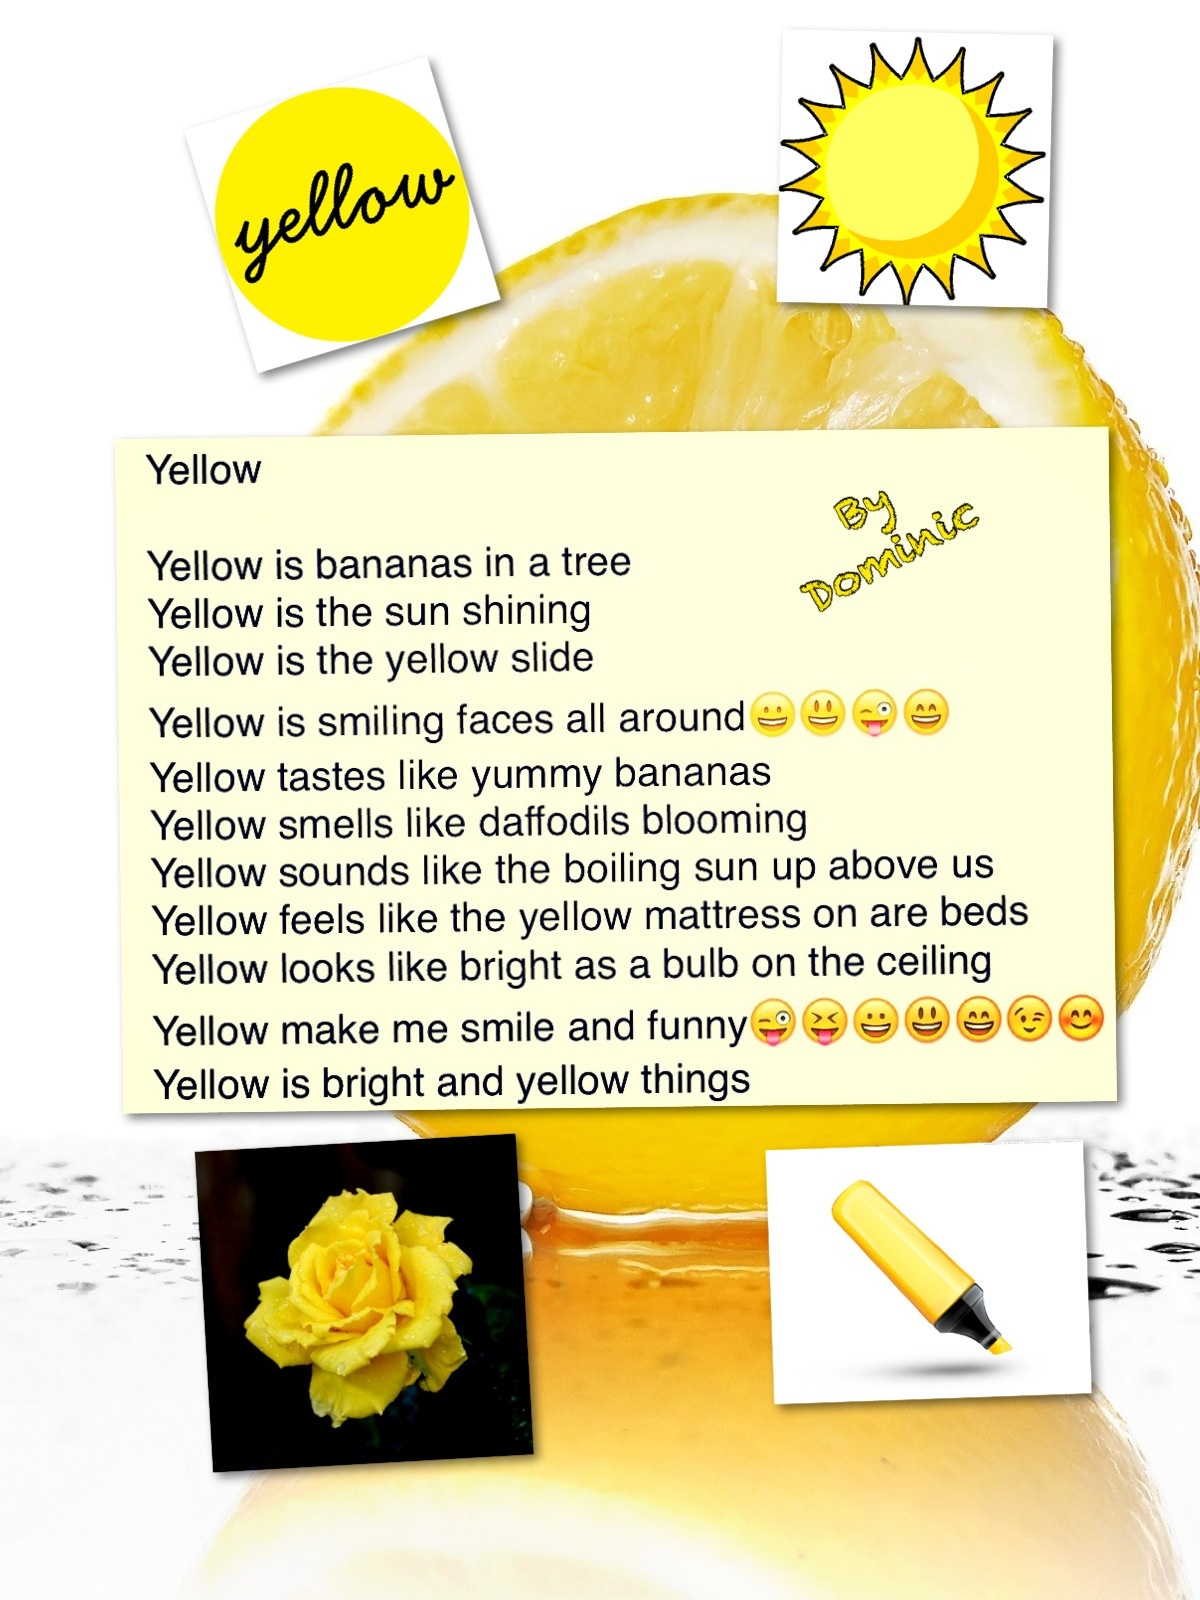 describing the color yellow to a V for vendetta also contains this same technique you describe looking at the color palette, a cold, pale/dull filter is imposed upon scenes taking place in the present and warm light, paired with bright yellows signals (well, it's more of a subliminal effect) events in the past.